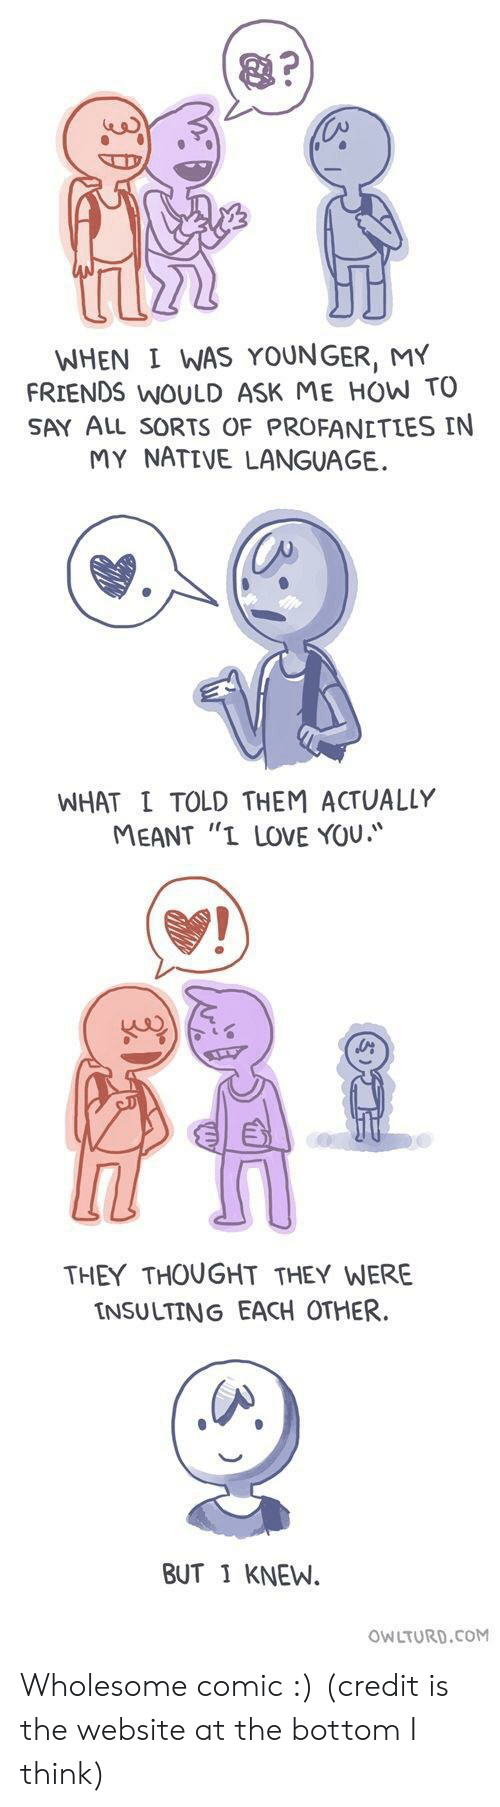 """Insulting: WHEN I WAS YOUNGER, MY  FRIENDS WOULD ASK ME HOW TO  SAY ALL sORTS OF PROFANETLES IN  MY NATIVE LANGUAGE.  WHAT L TOLD THEM ACTUALLY  MEANT """"I LOVE YOU.  THEY THOUGHT THEY WERE  INSULTING EACH OTHER  BUT 1 KNEW.  OWLTURD.CoM Wholesome comic :) (credit is the website at the bottom I think)"""